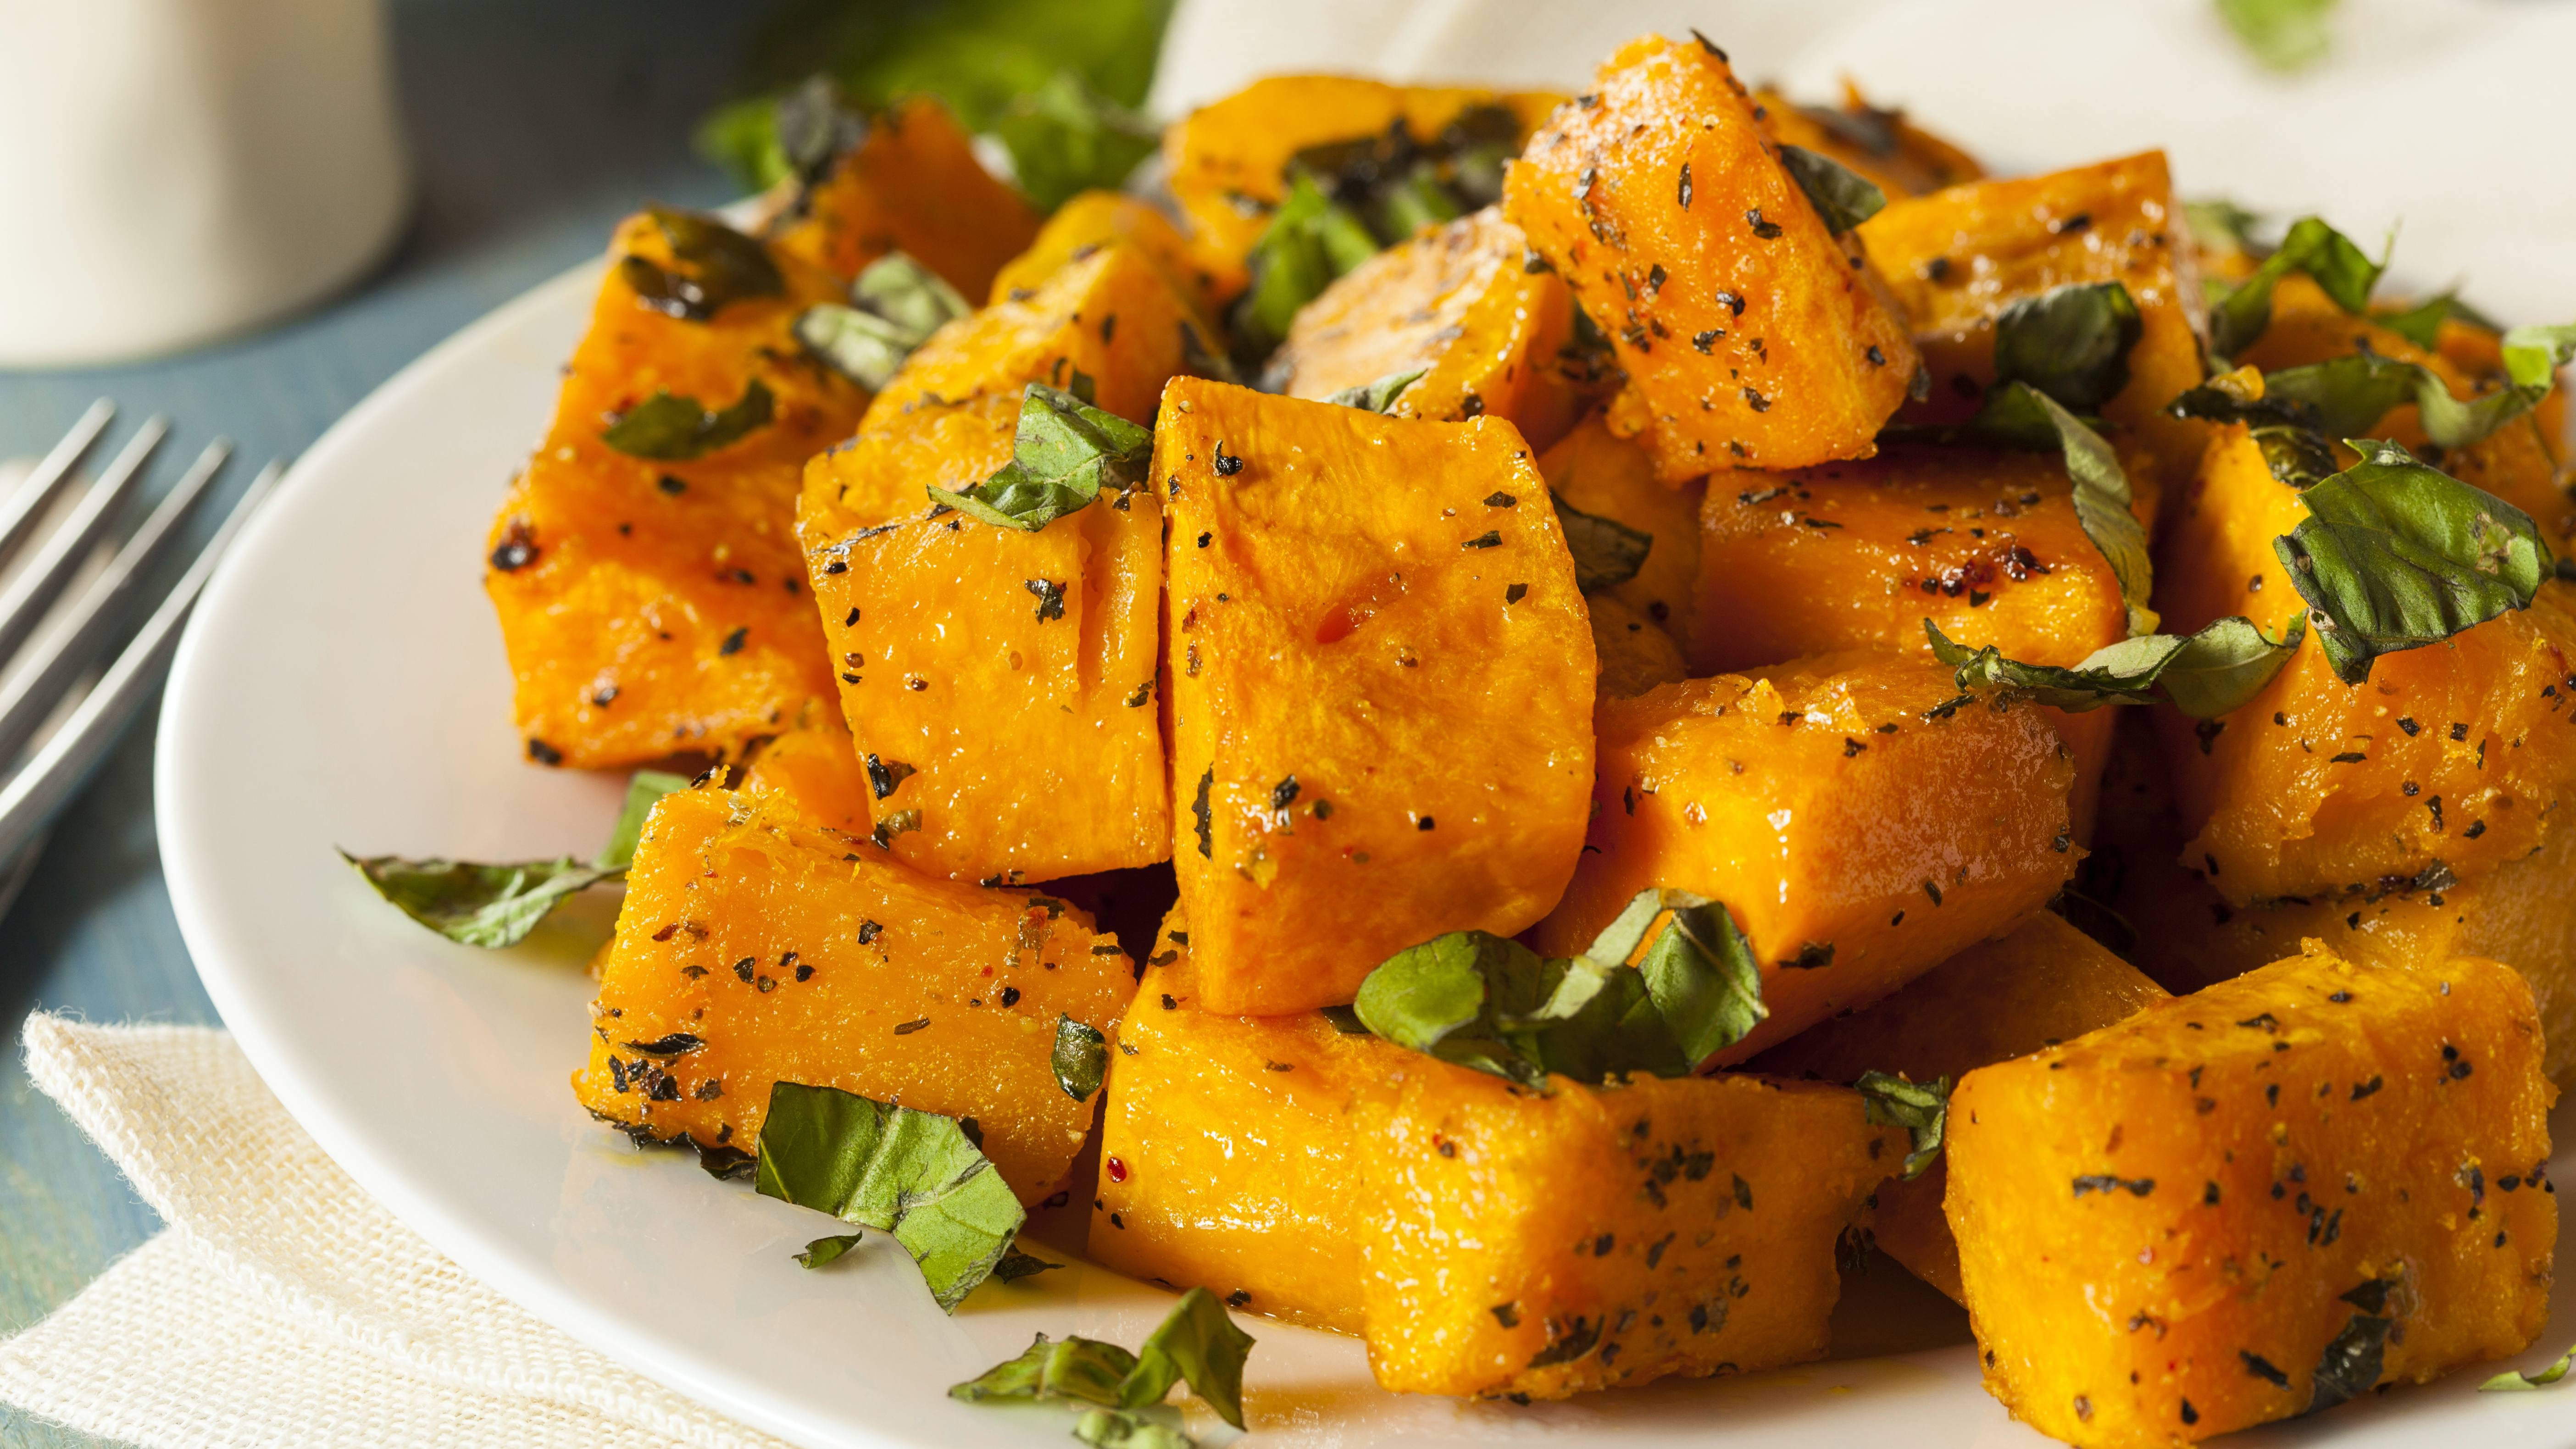 butternut squash pumpkin fries with herbs on a plate